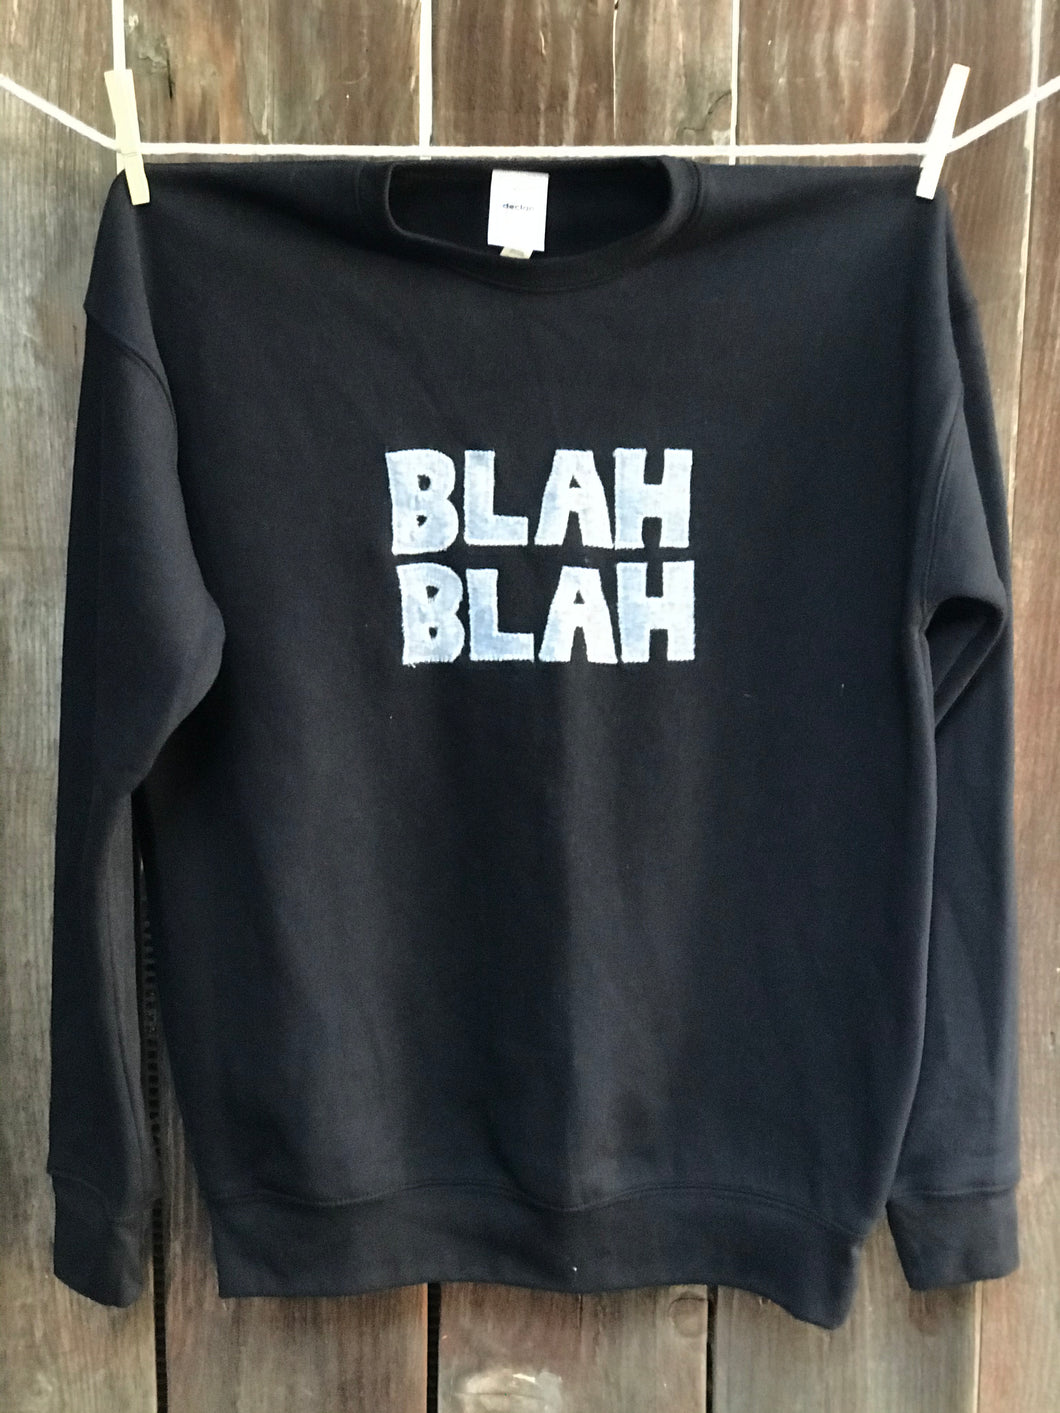 Unisex Blah Blah Fleece Sweatshirt Tee